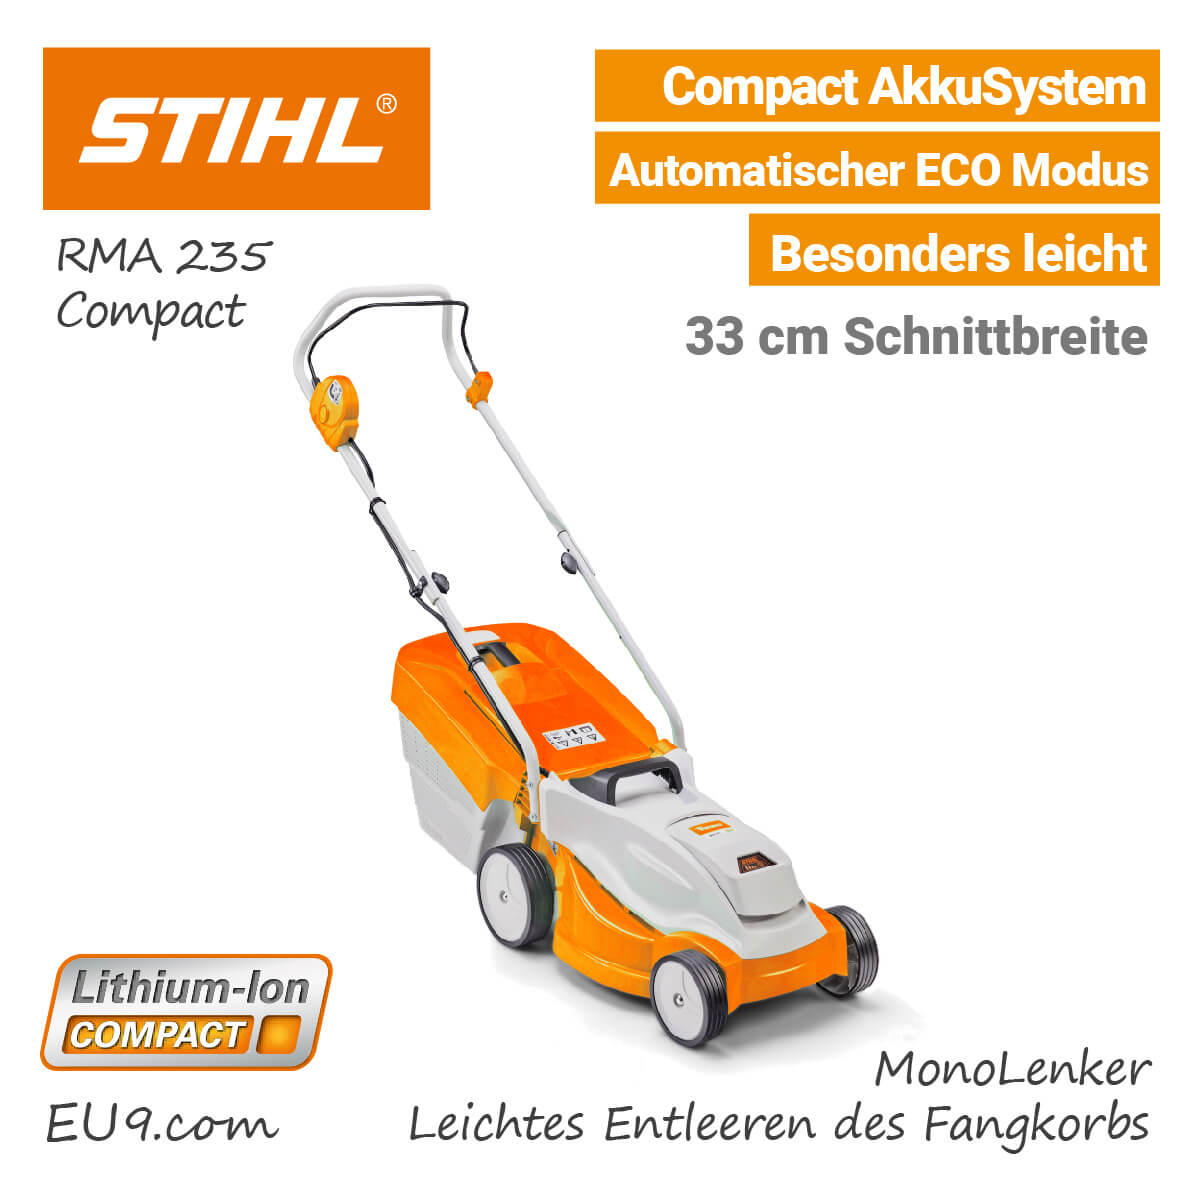 neu 2018 stihl rma 235 akku rasenm her compact jetzt neu. Black Bedroom Furniture Sets. Home Design Ideas